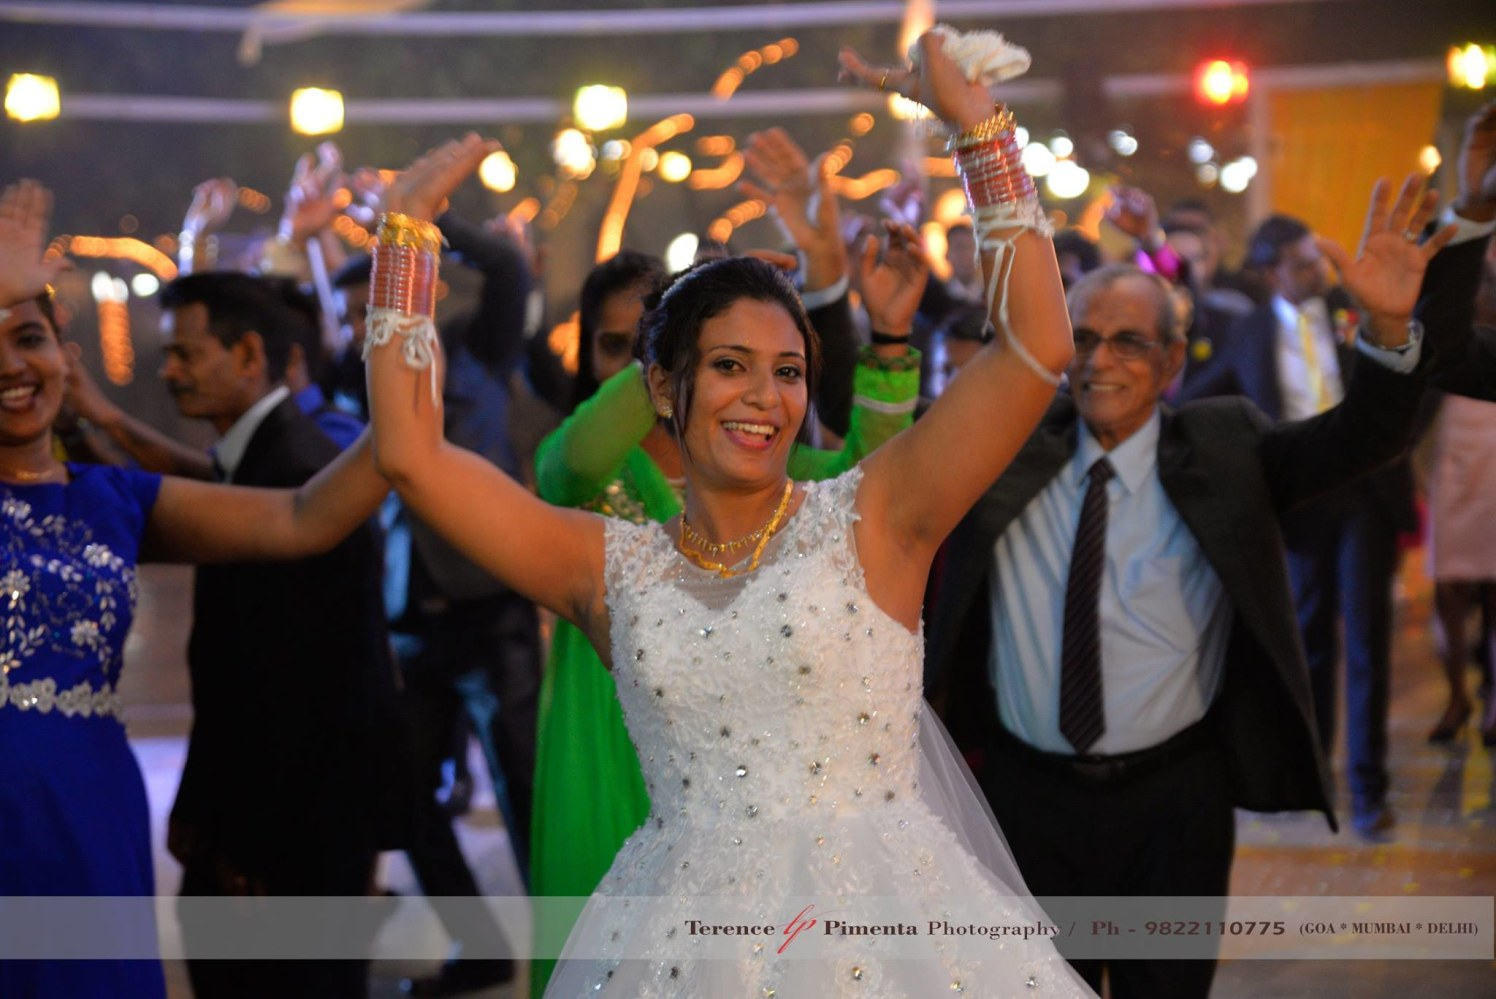 Candid Shot Of Bride Grooving On The Wedding Beats by Terence Savio Pimenta Wedding-photography | Weddings Photos & Ideas